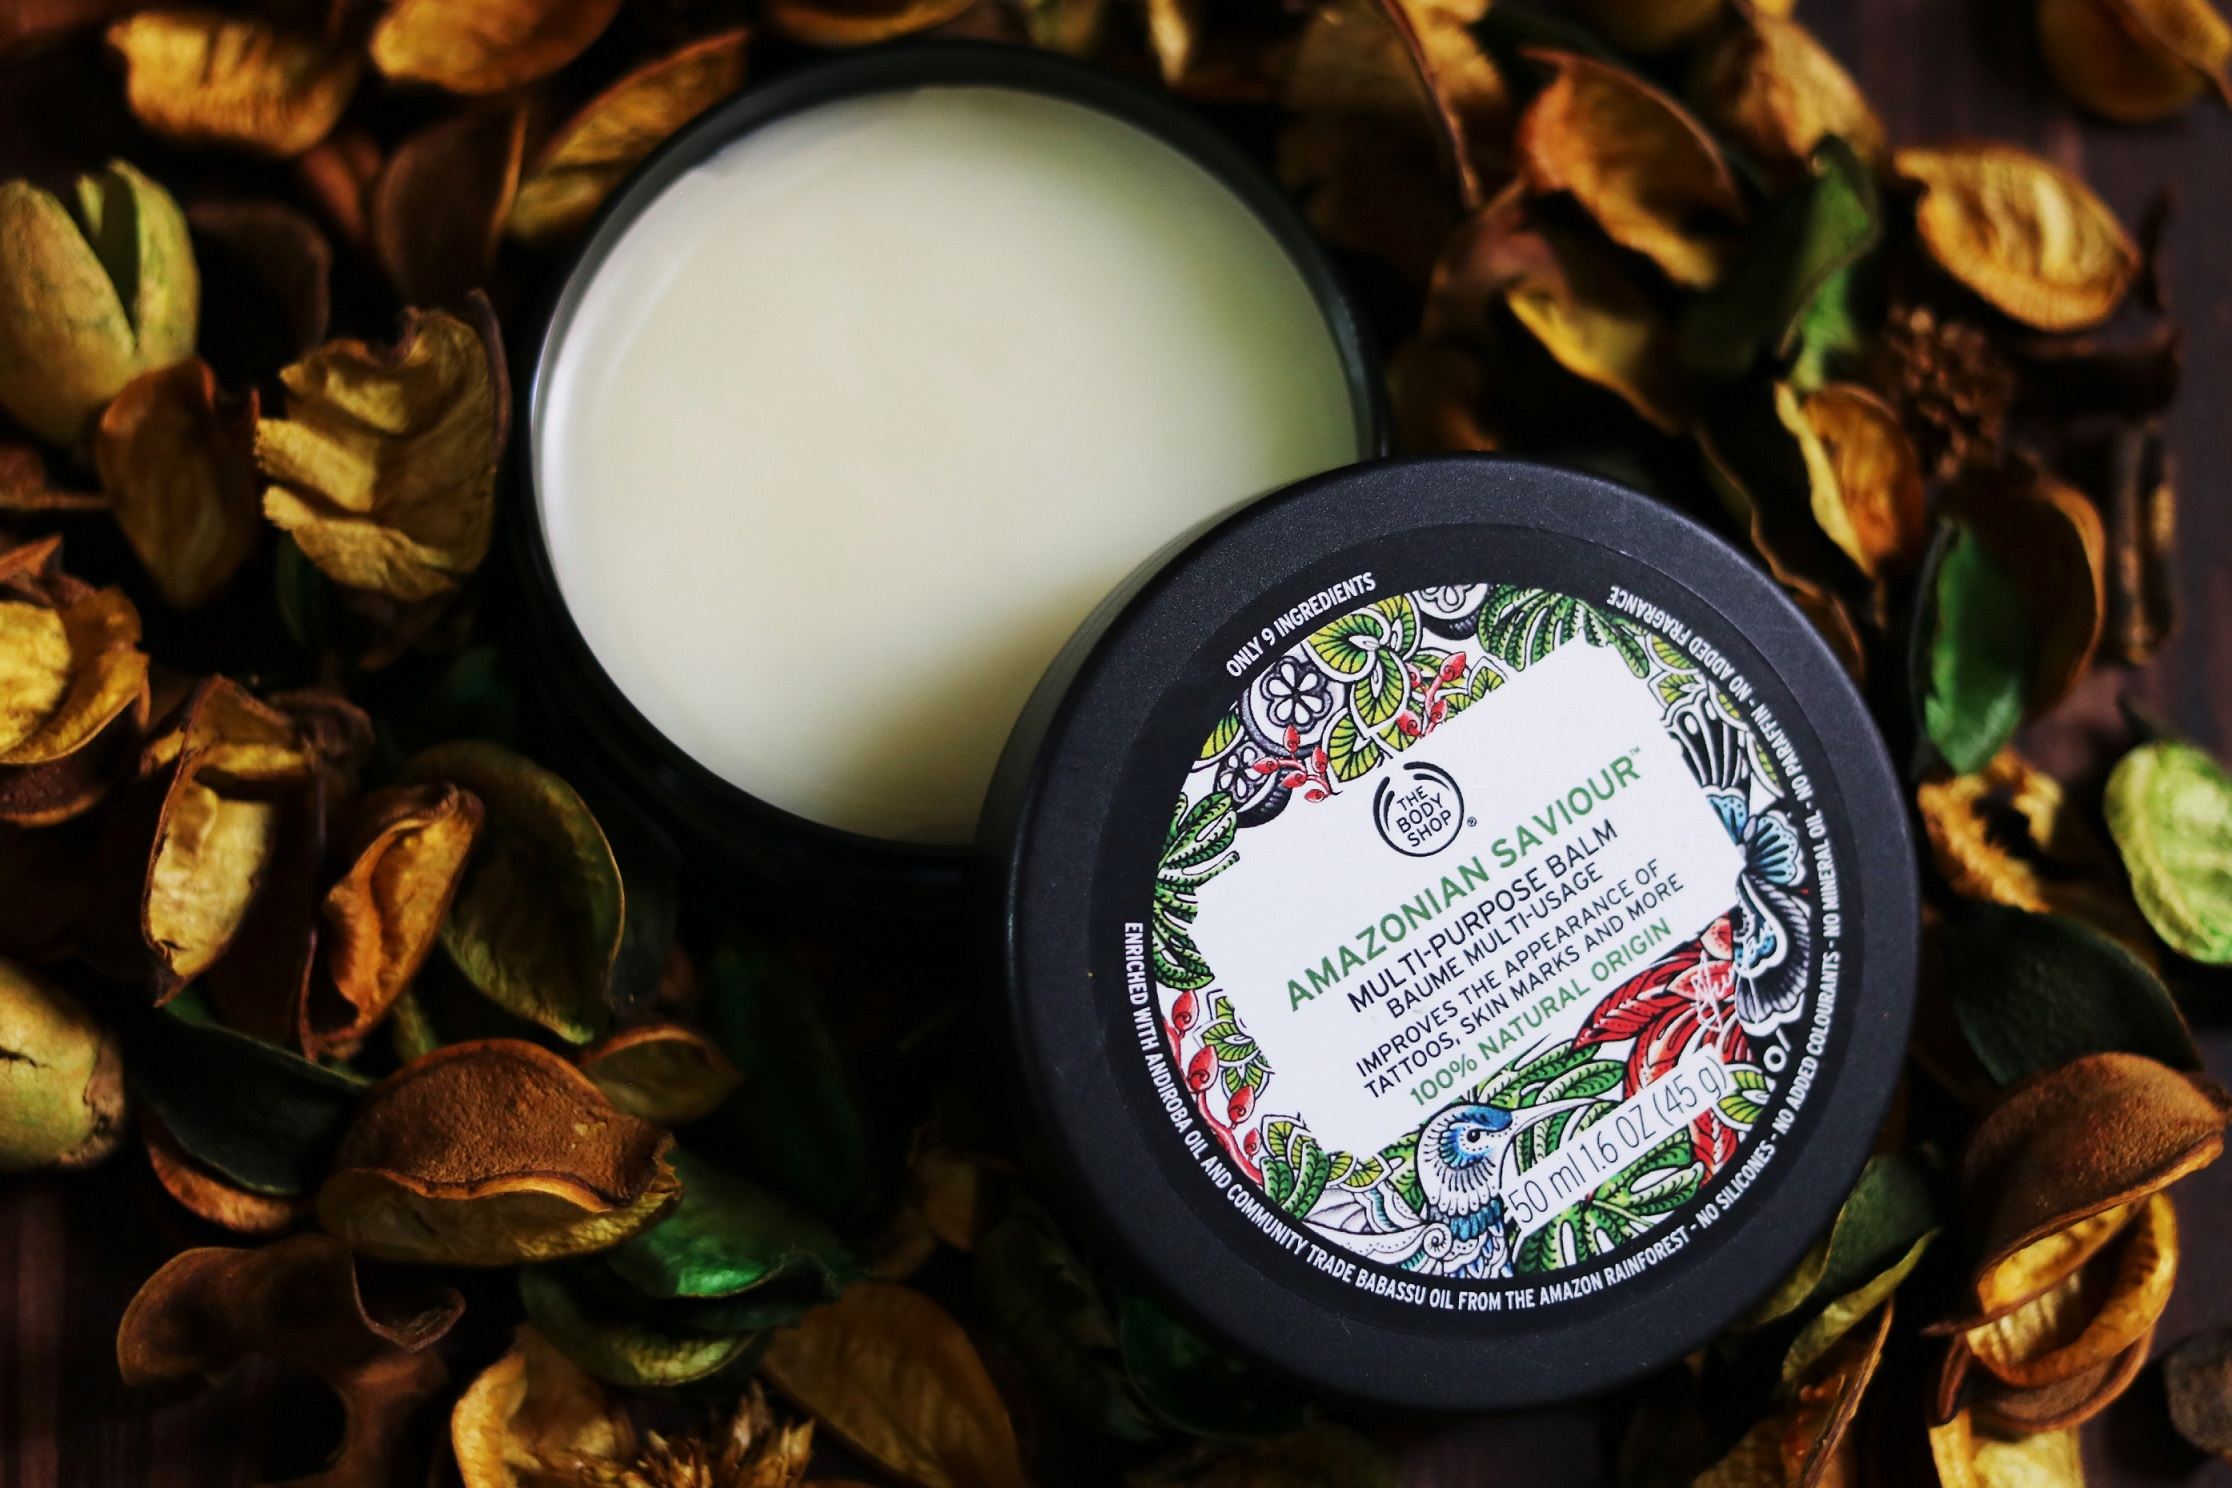 The Body Shop Amazonian Multi-Purpose Saviour Balm